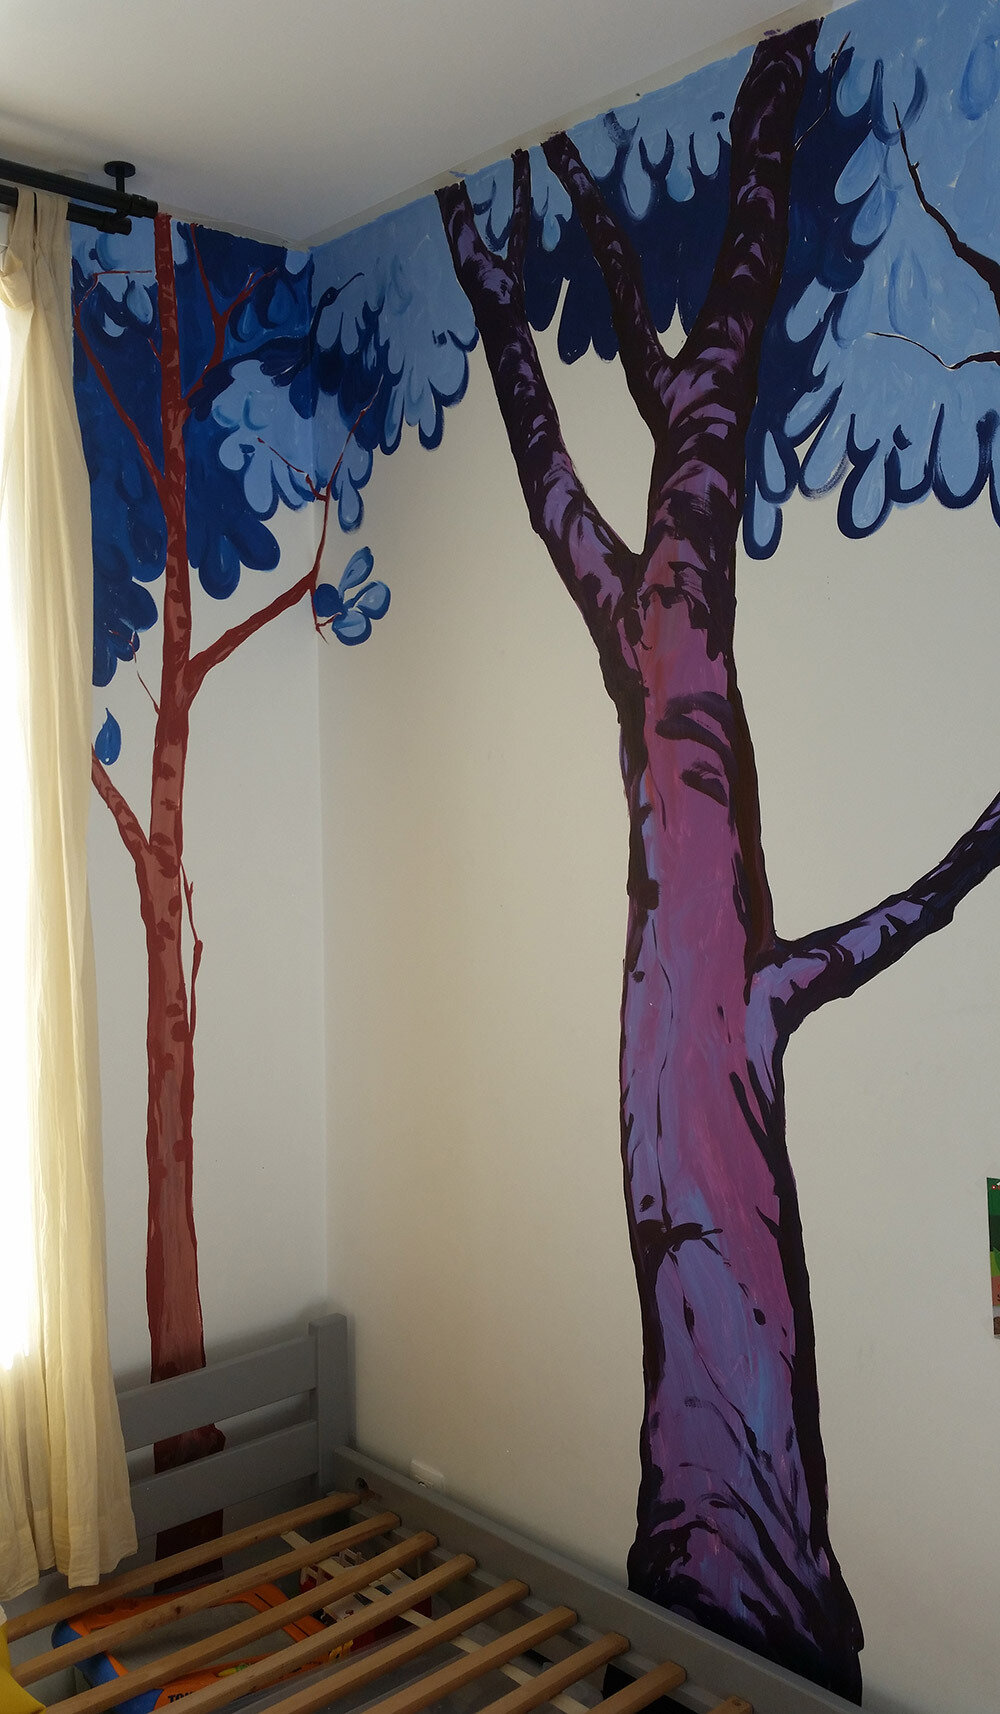 Multicolor forest in the kids' room